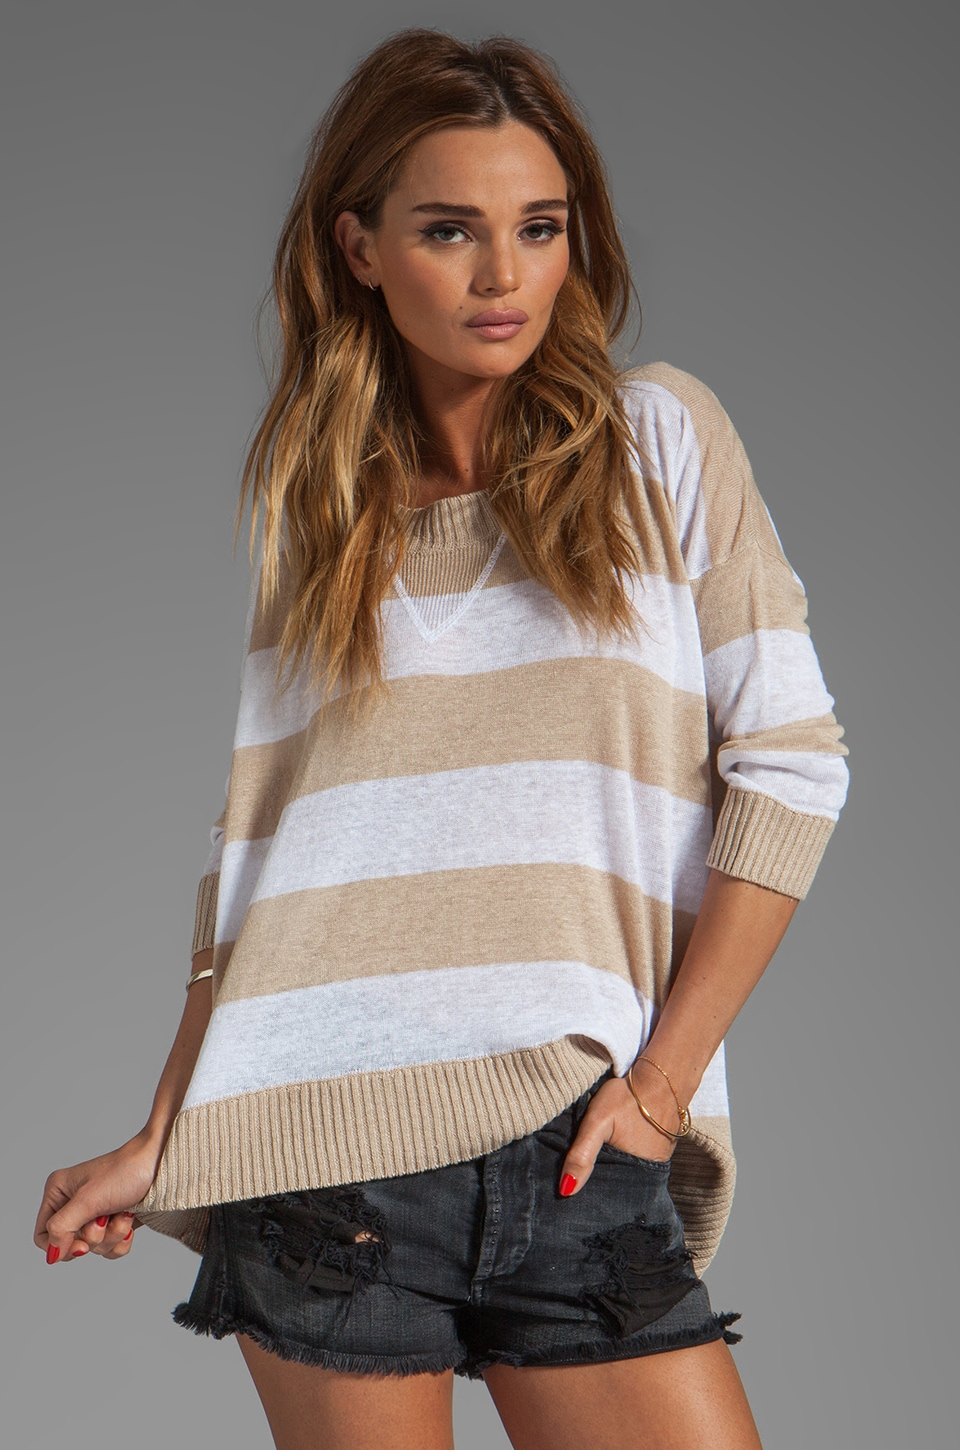 Central Park West Chapel Hill Top in Khaki/White